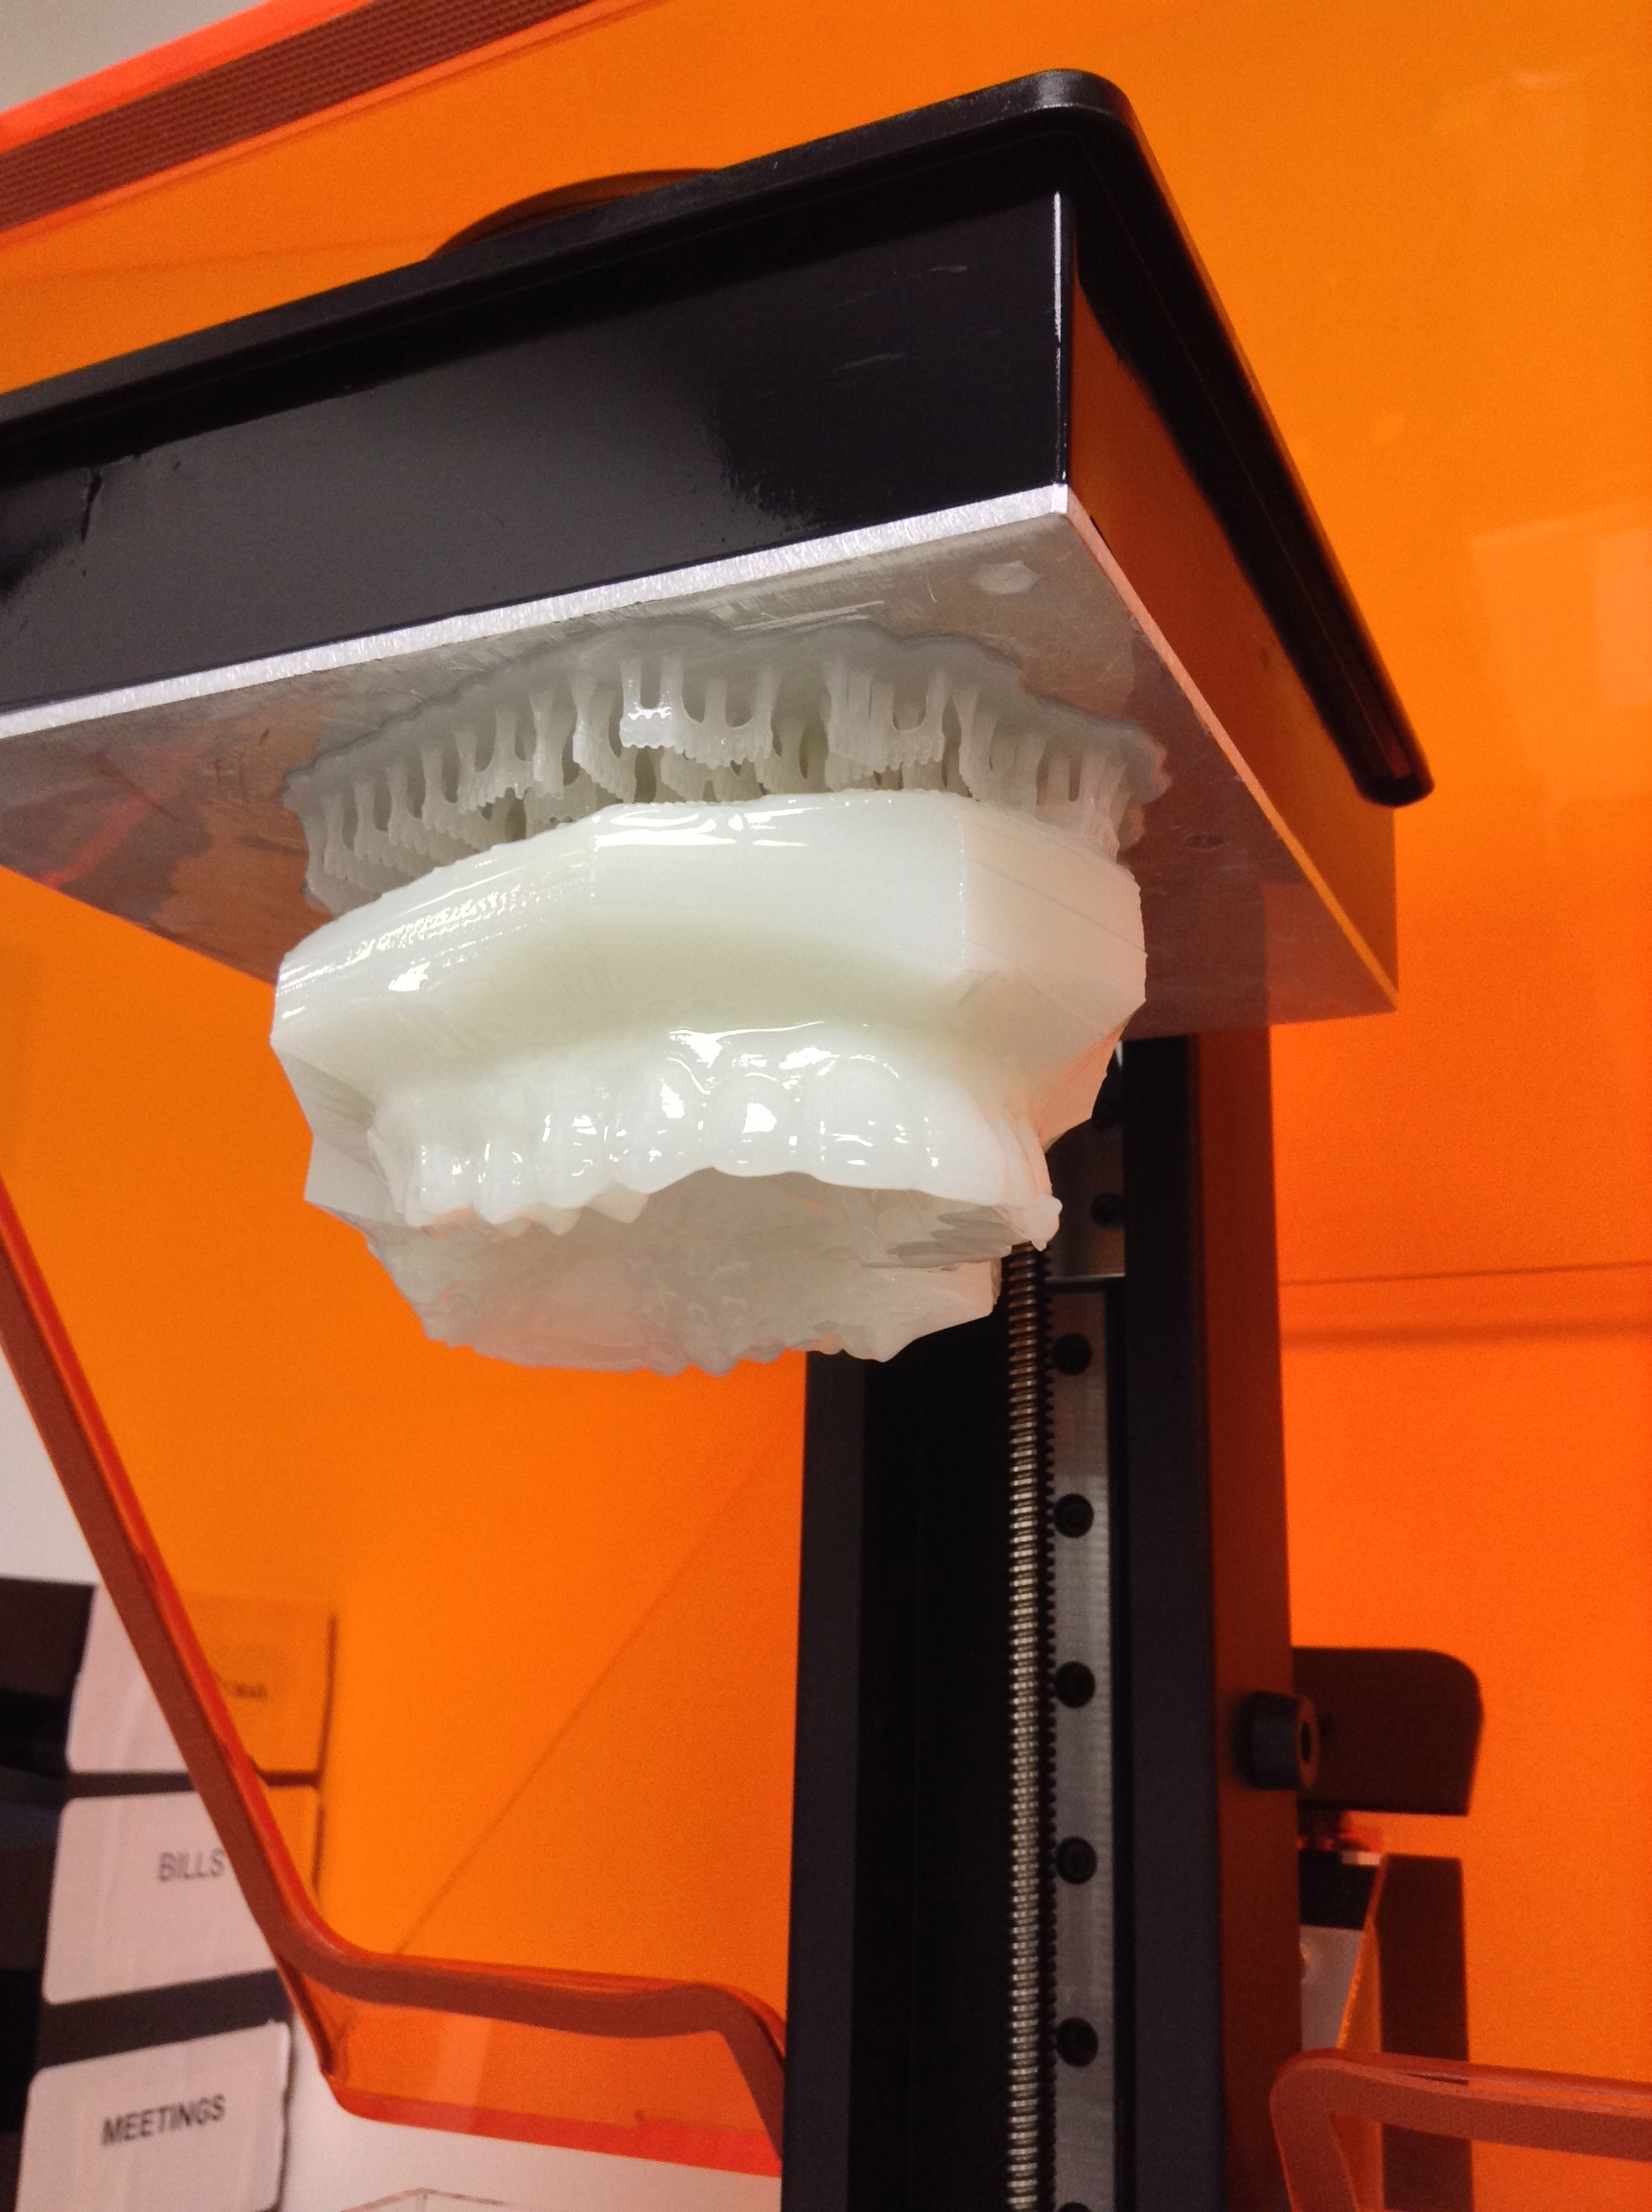 Dental 3D scanning works in tandem with digital production technologies like 3D printing